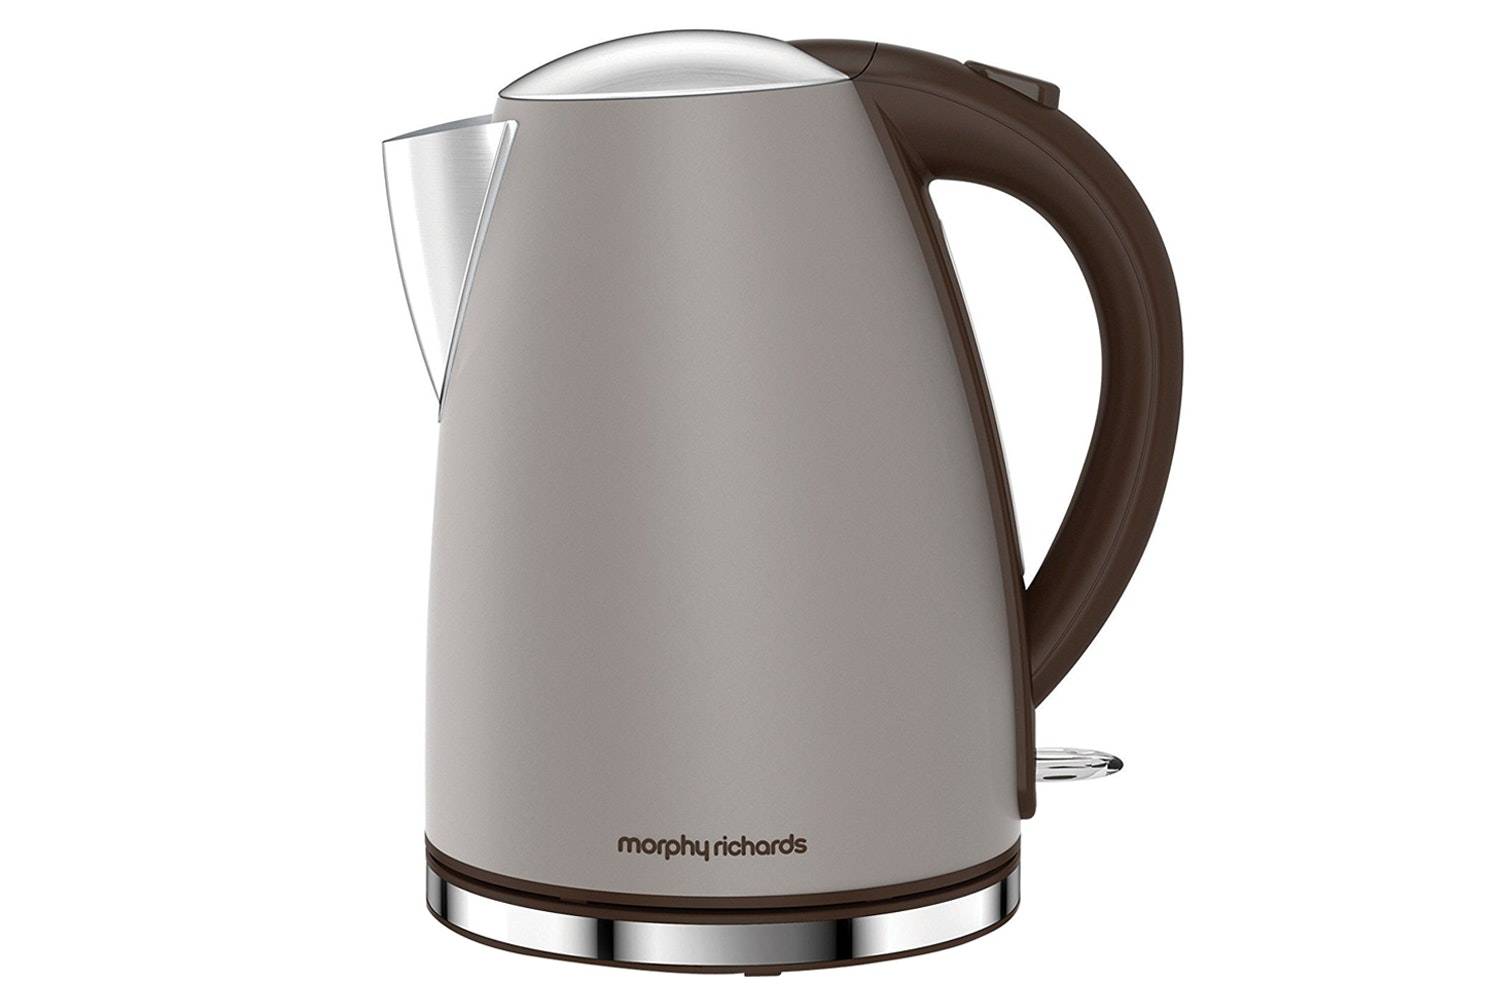 Morphy Richards Accents Kettle | Pebble